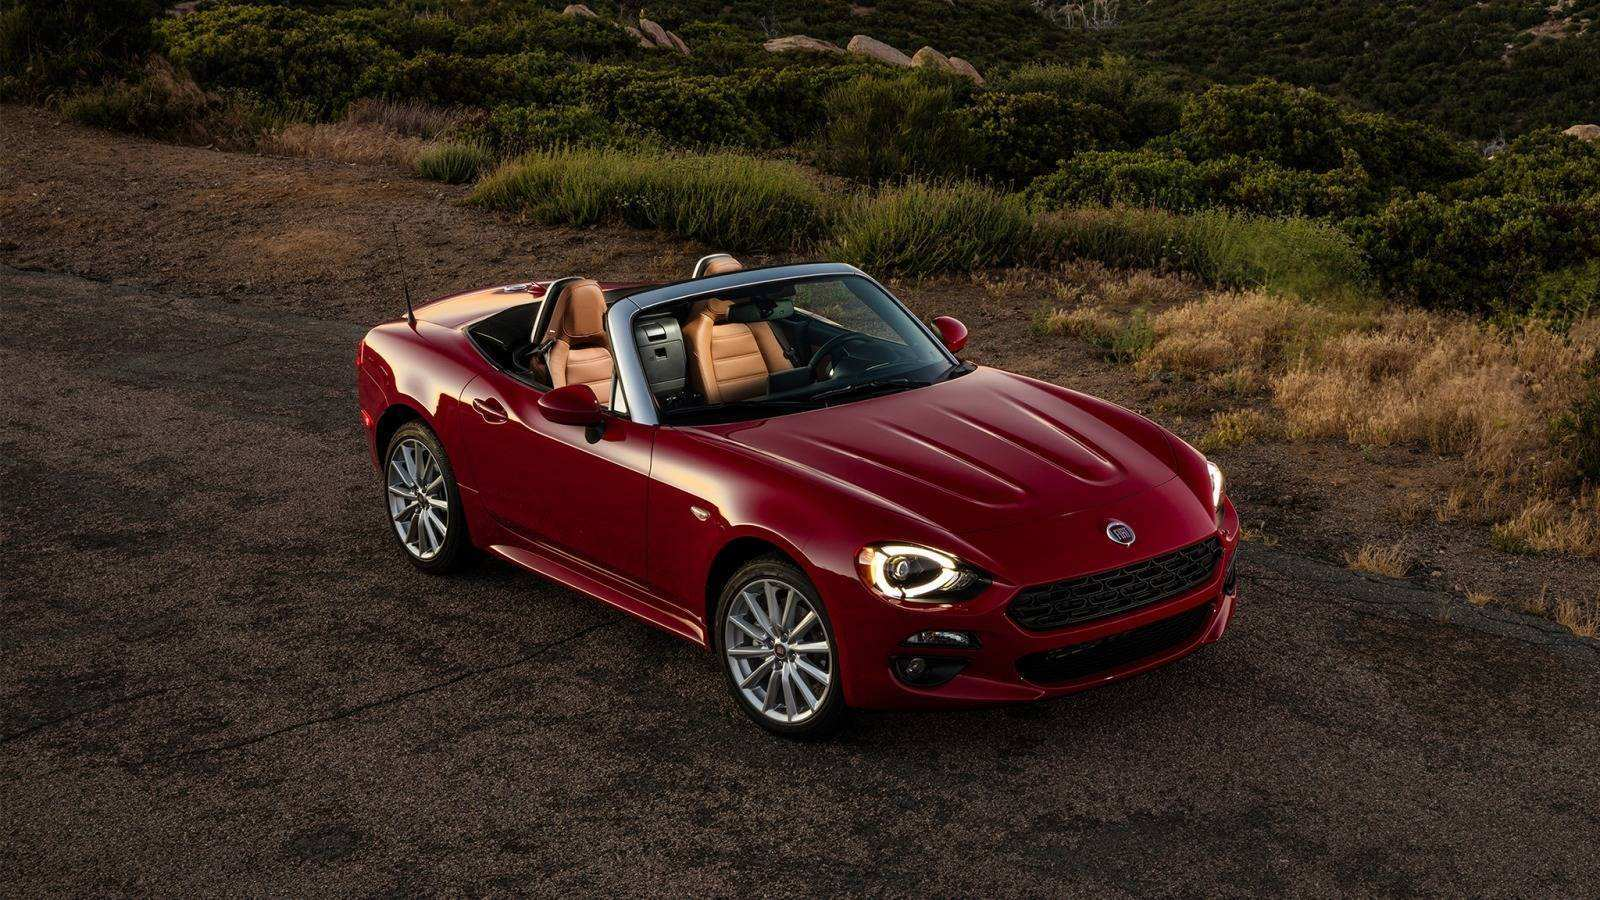 56 All New 2019 Fiat Convertible Configurations